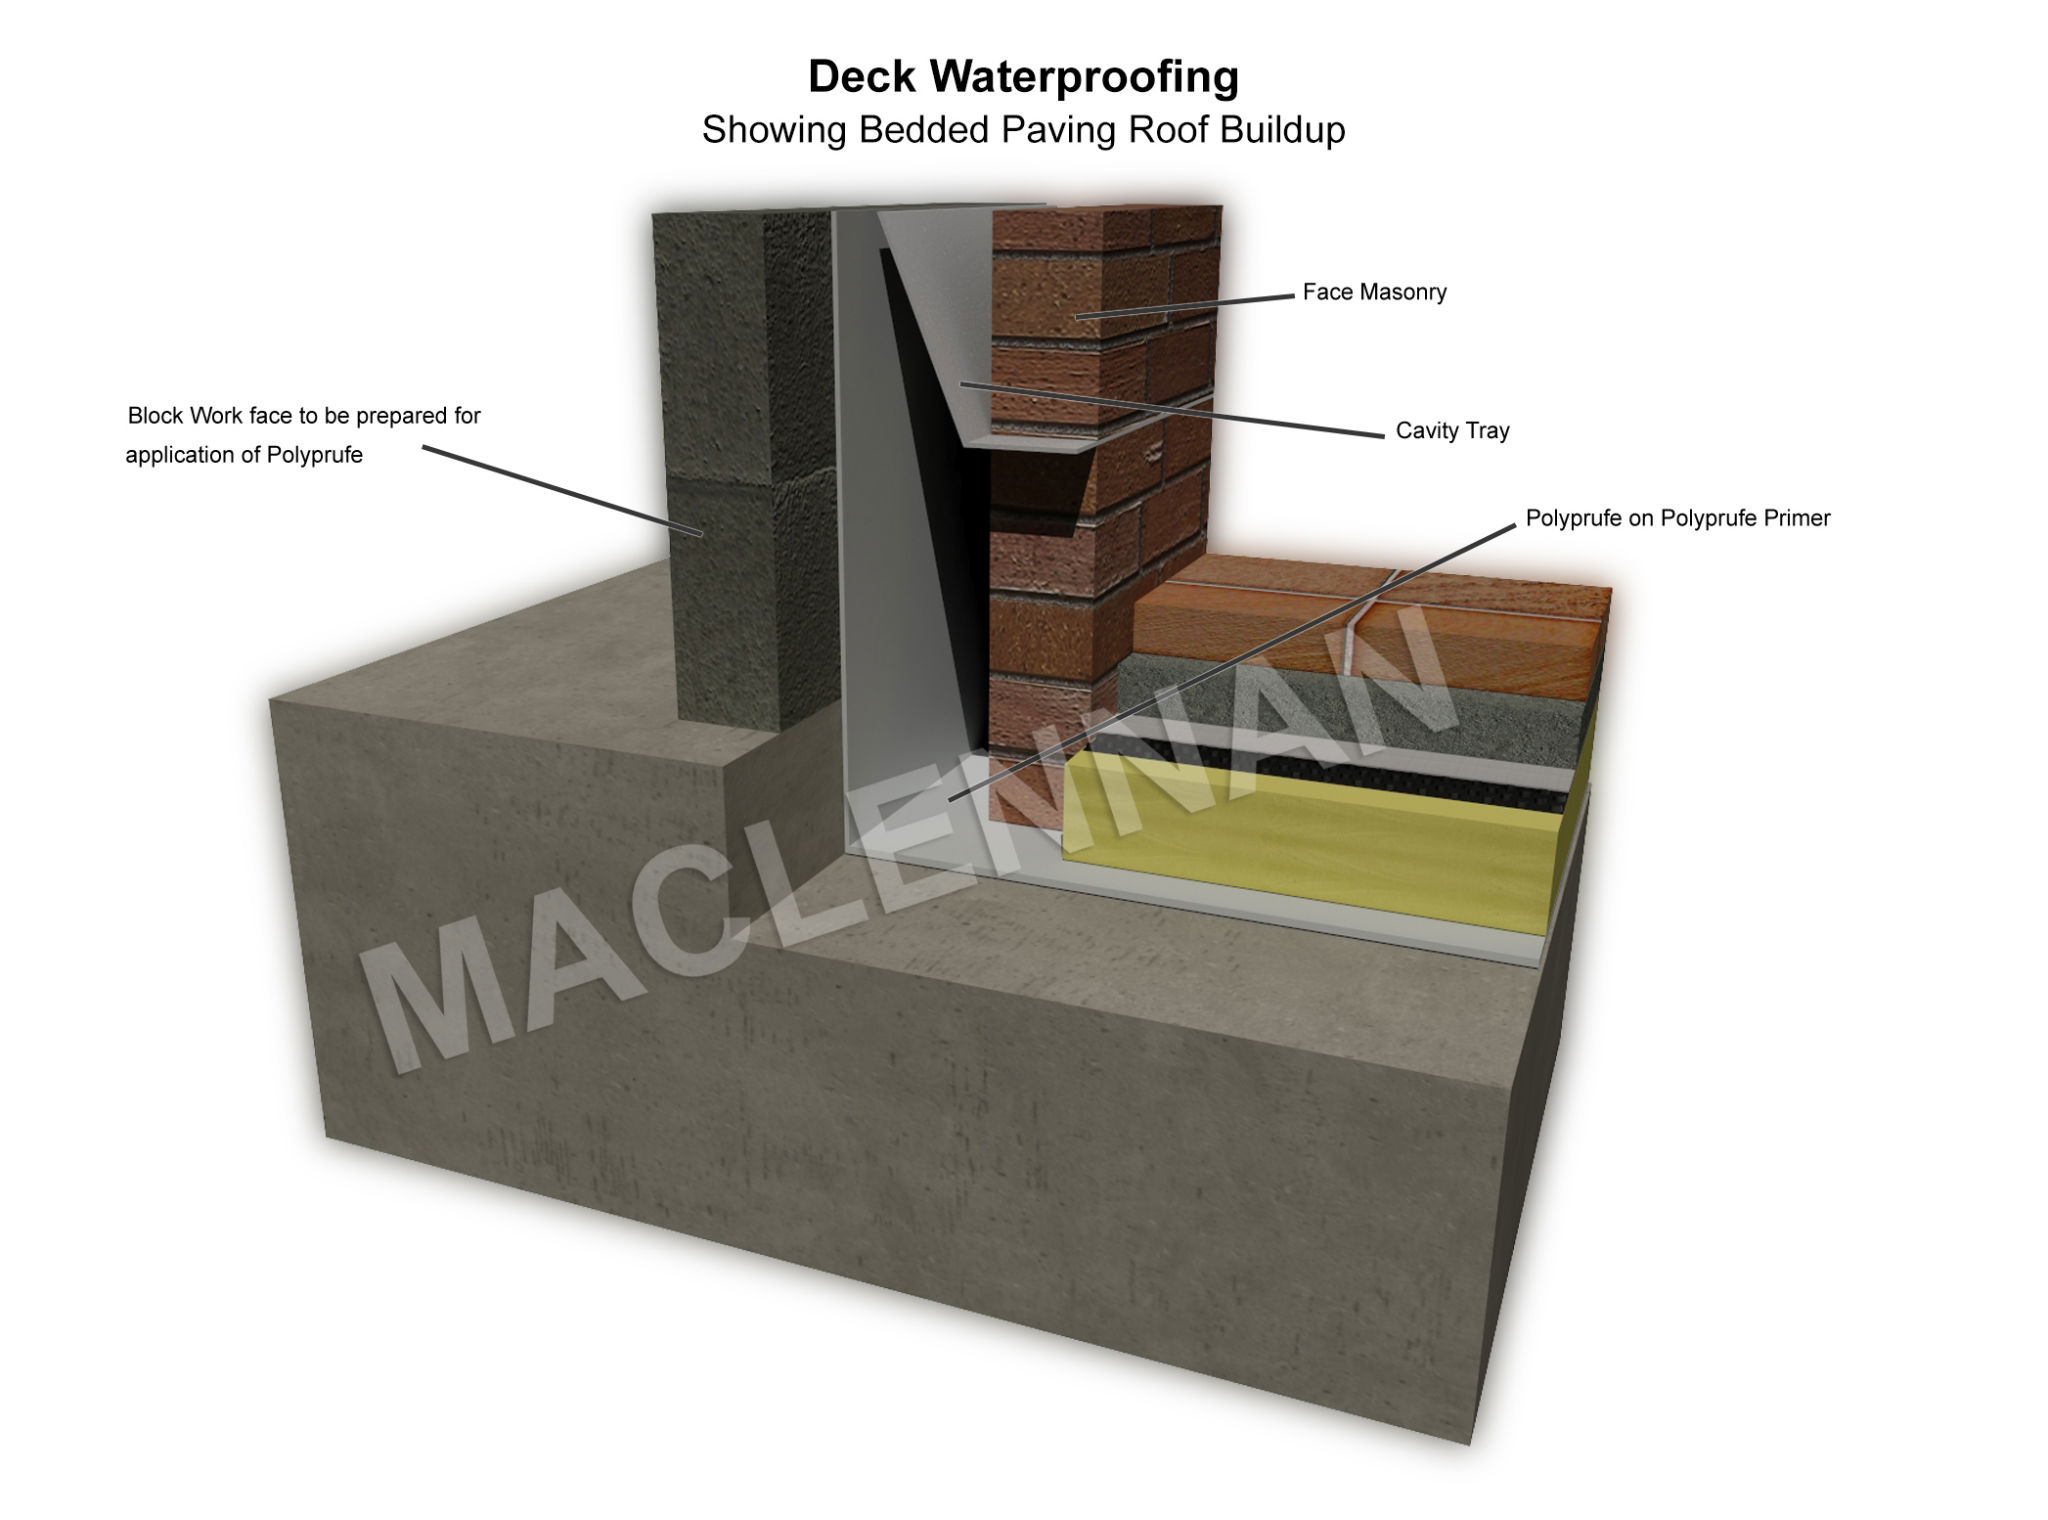 basement waterproofing wentworth surrey 3d drawing deck waterproofing